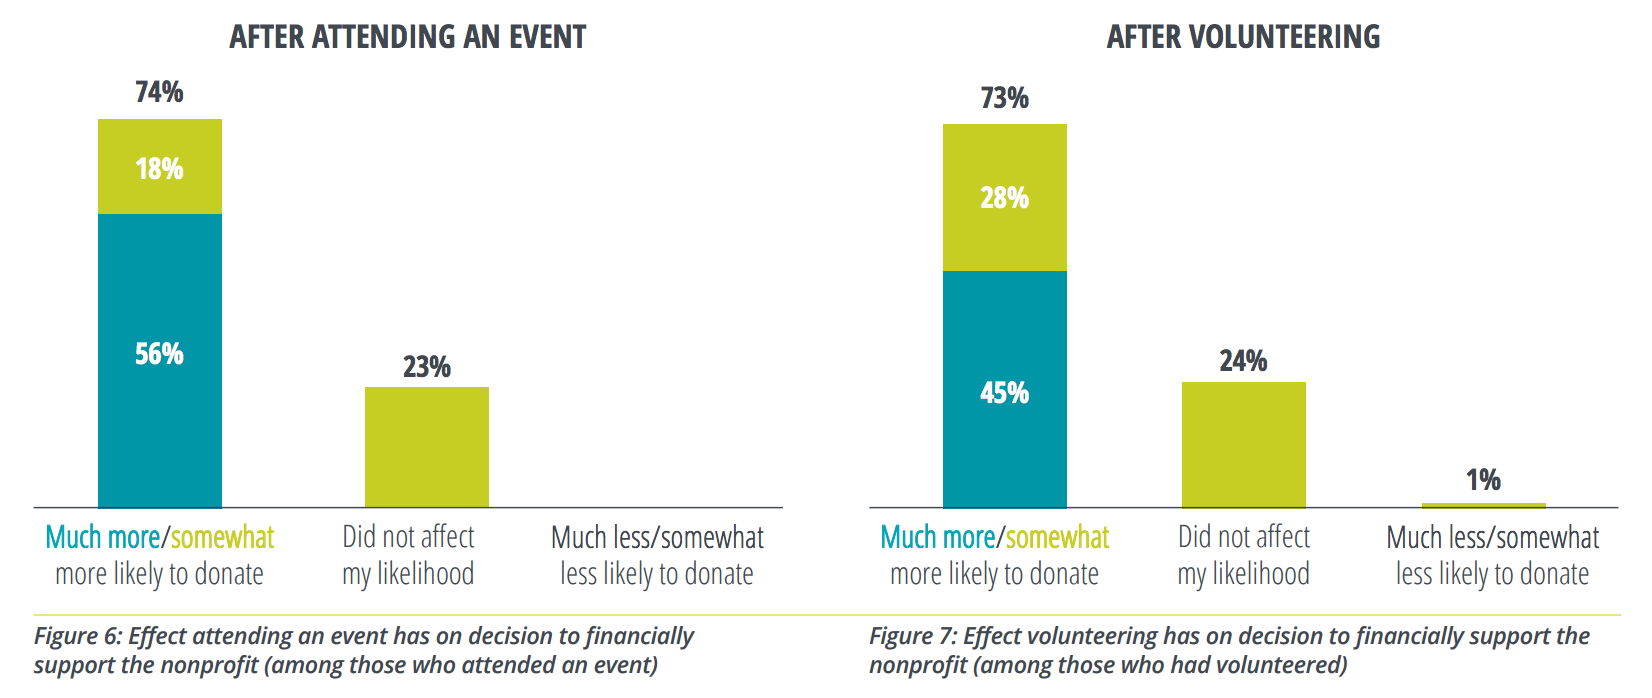 How likely volunteers and event attendees are to make a donation